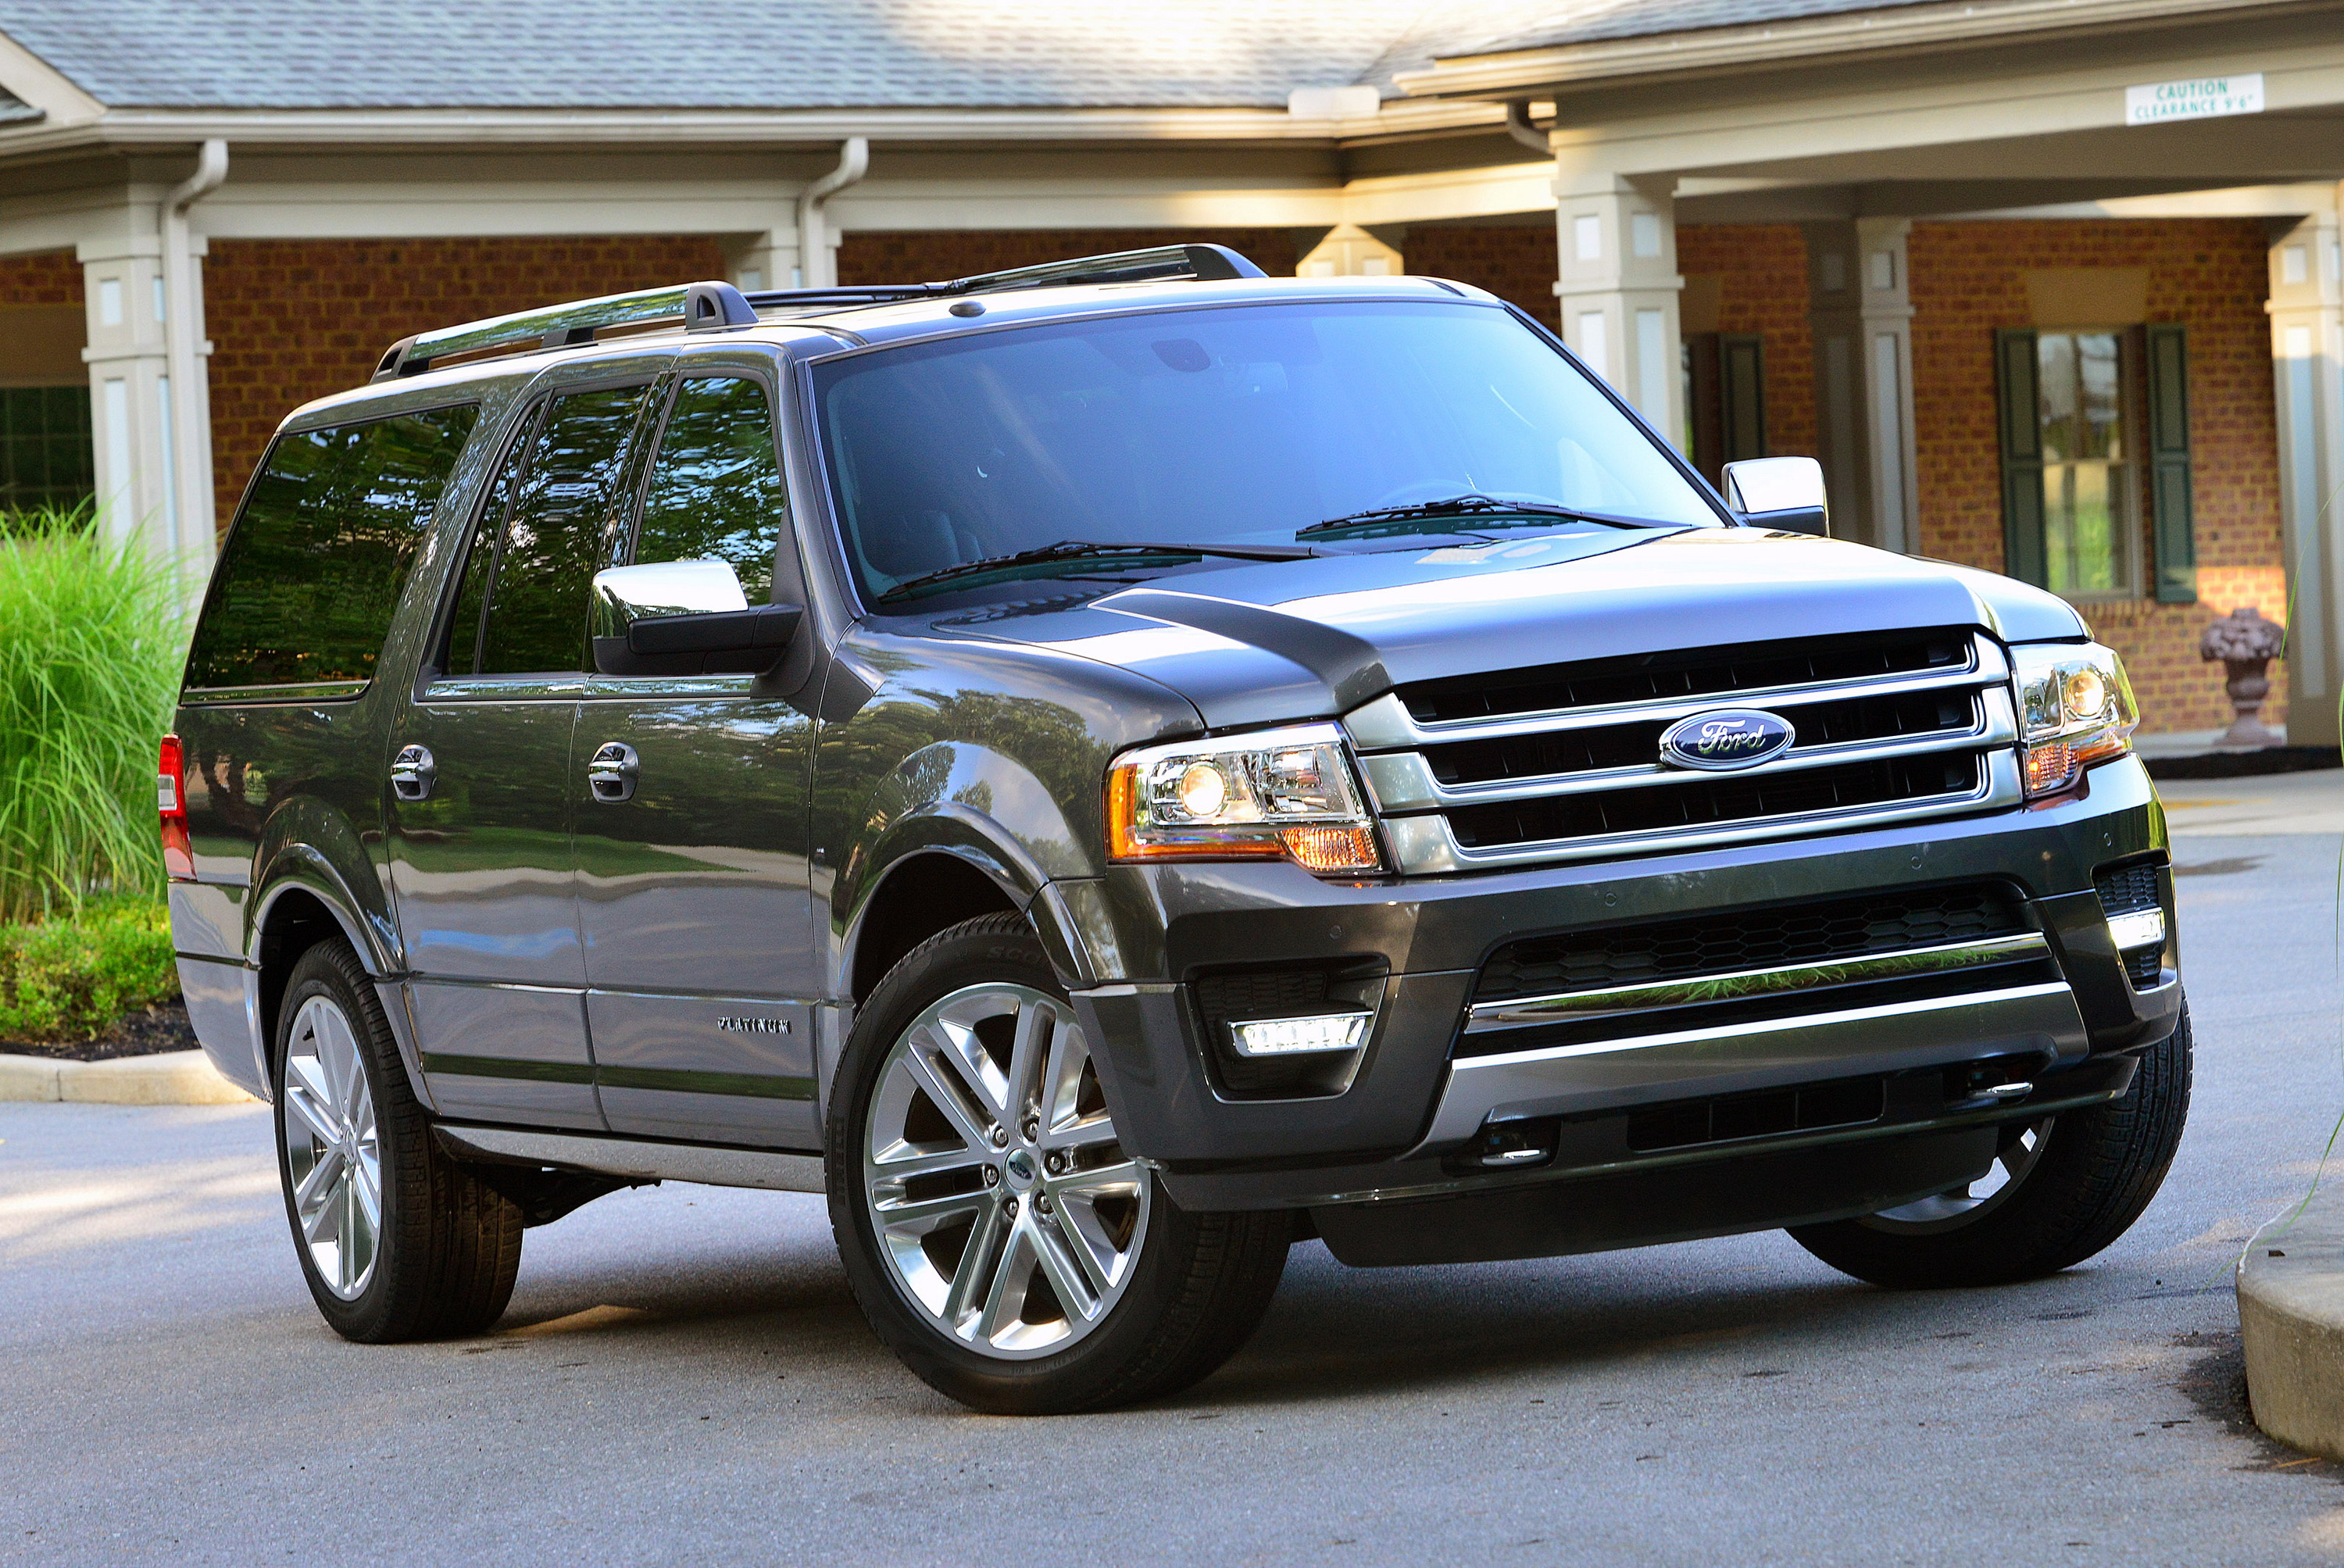 Ford Expedition Top Speed